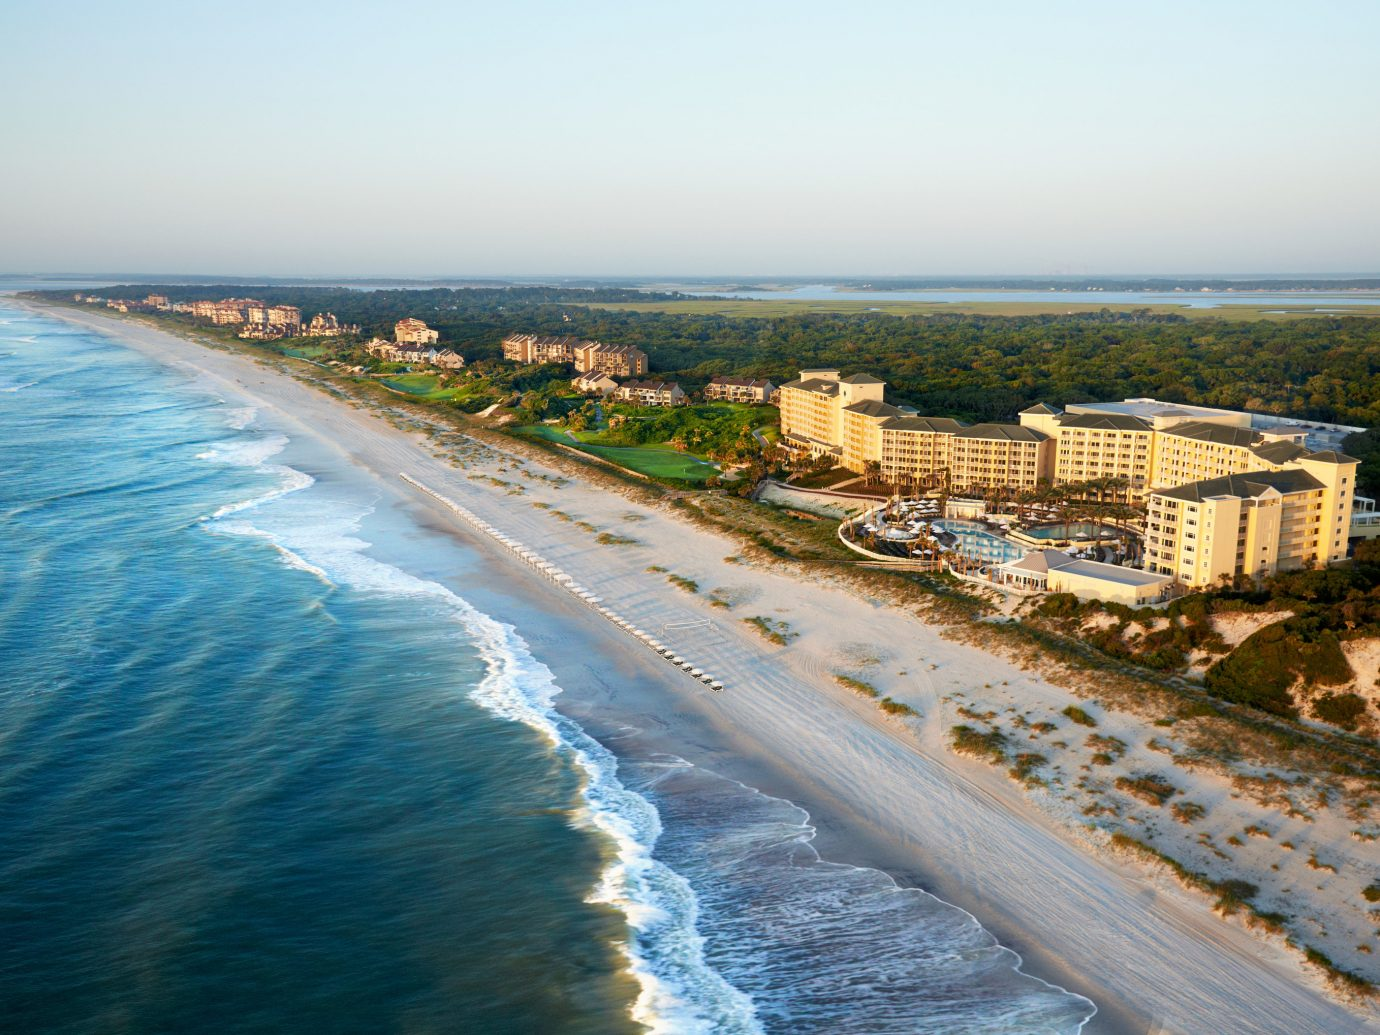 Trip Ideas sky outdoor water Coast Sea shore Beach Ocean Nature body of water horizon vacation bay cliff wave cape aerial photography breakwater terrain tower cove sand traveling sandy